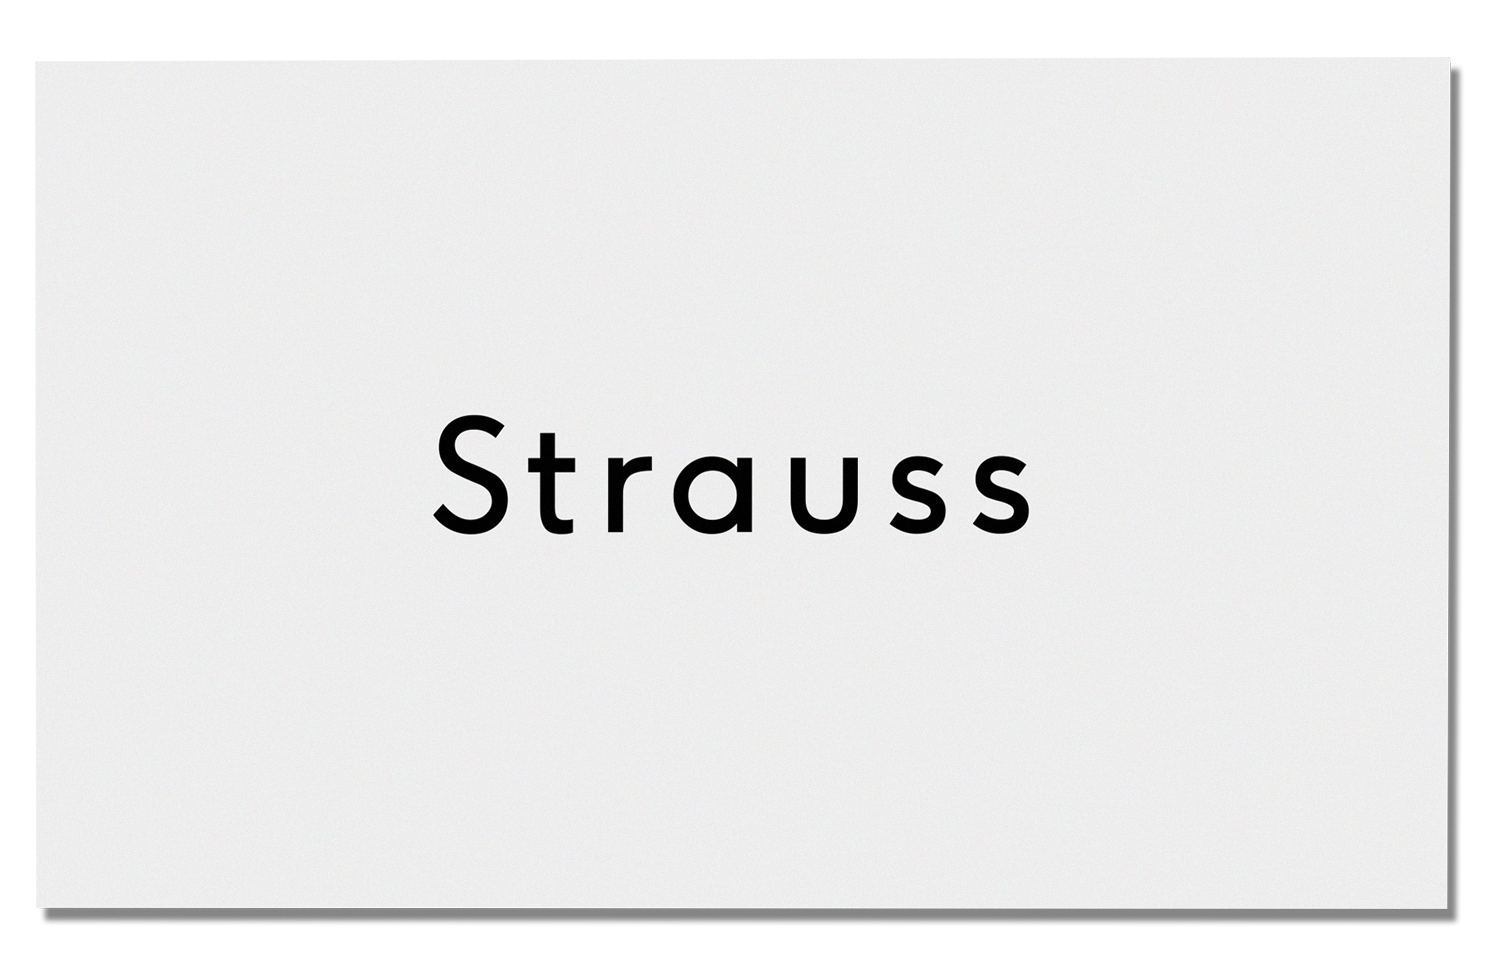 studio-strauss-1-1